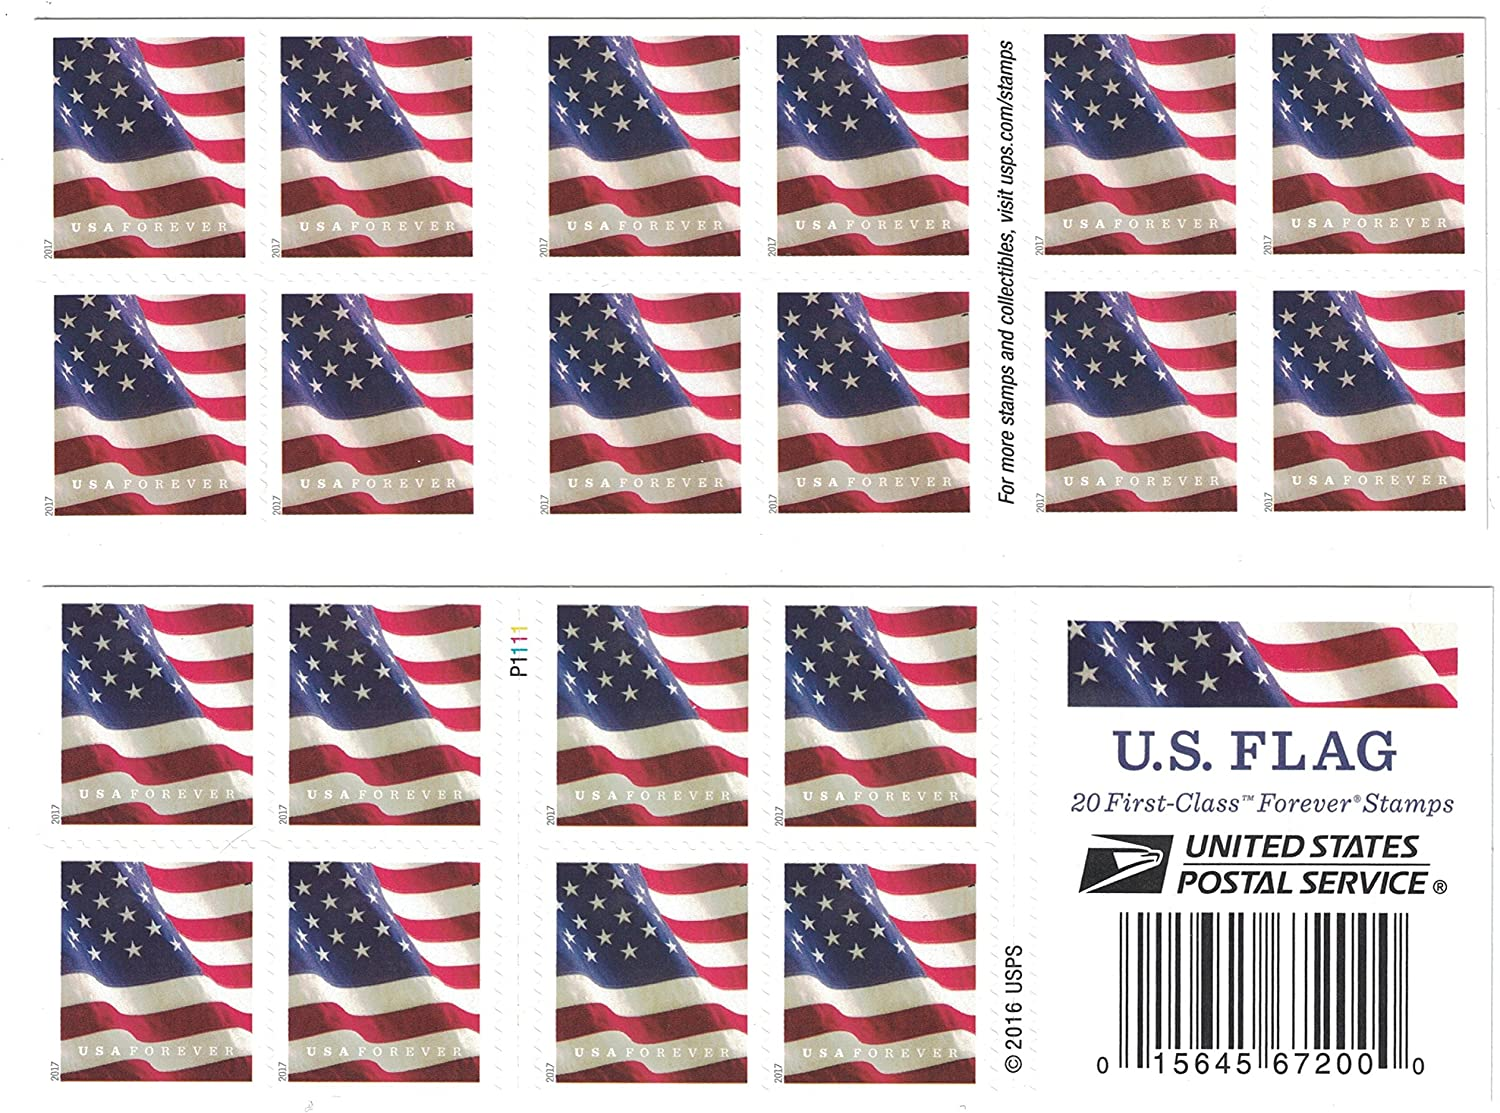 Usps Us Flag Forever Postage Stamps Book Of 20